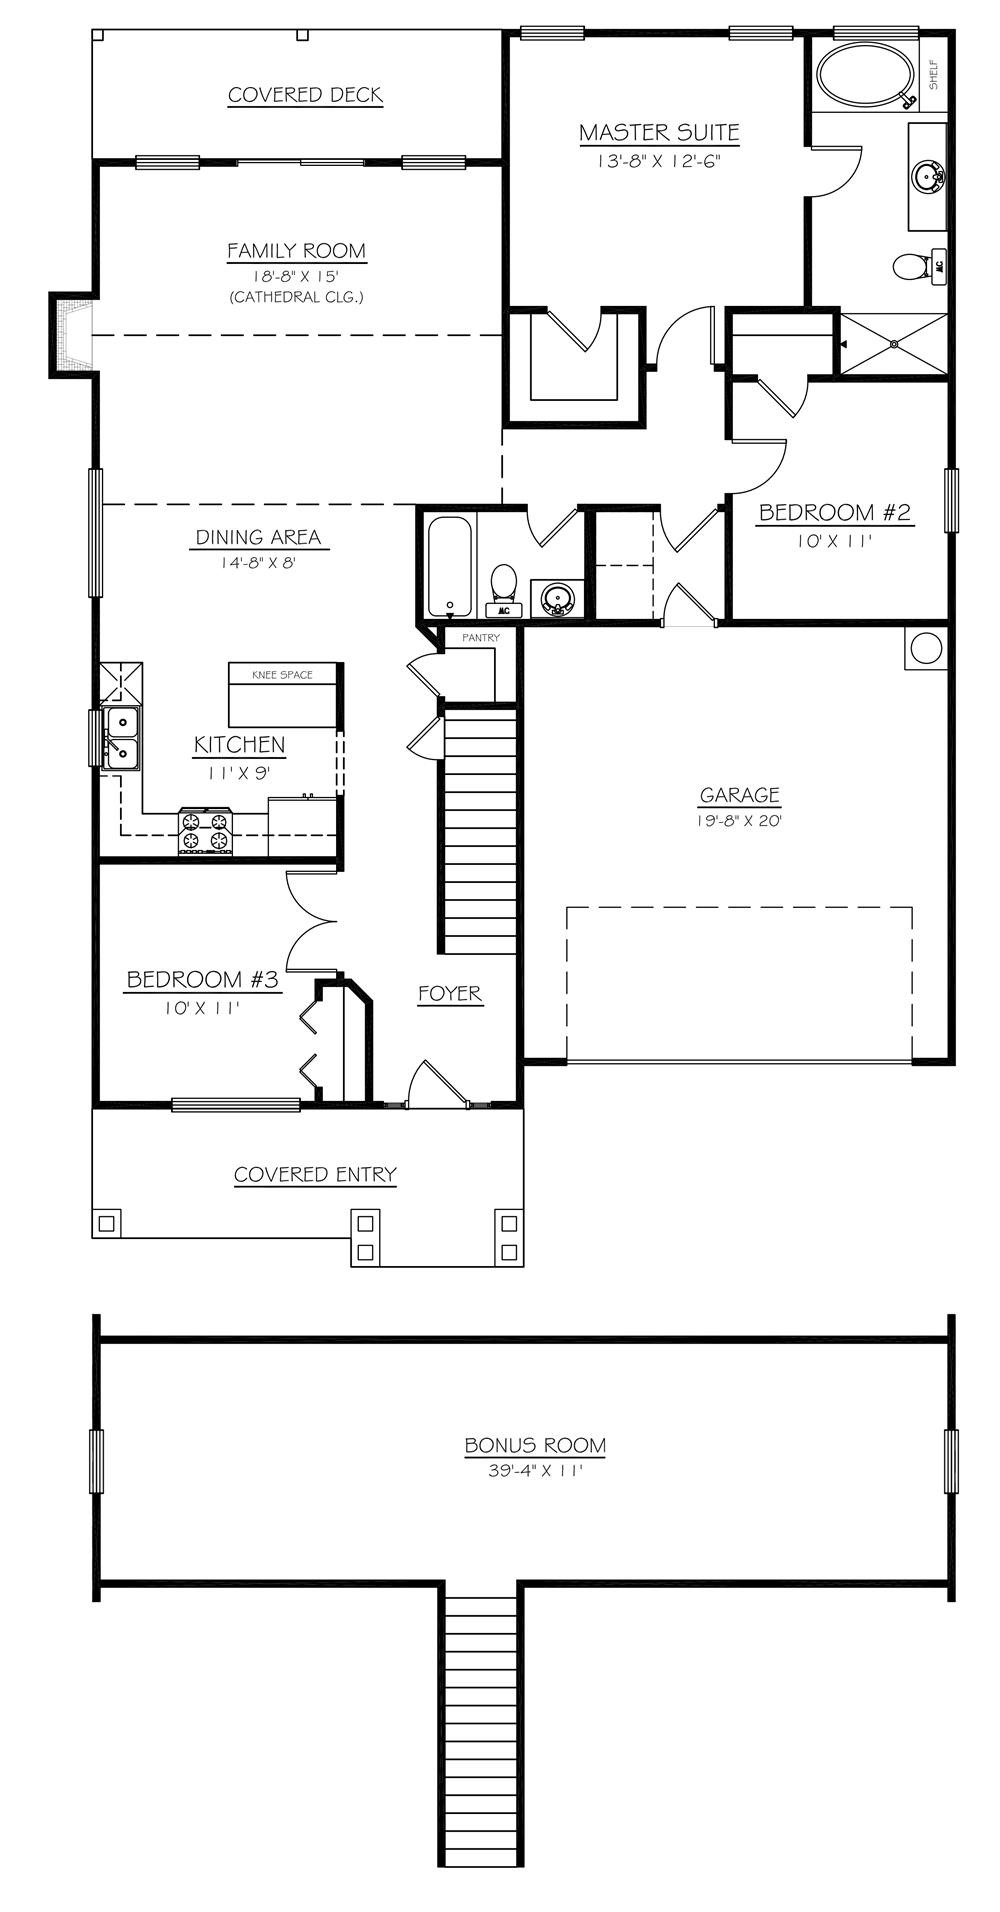 Alberson%20-%20Floor%20Plan%20-%20Web%20(Vertical).jpg